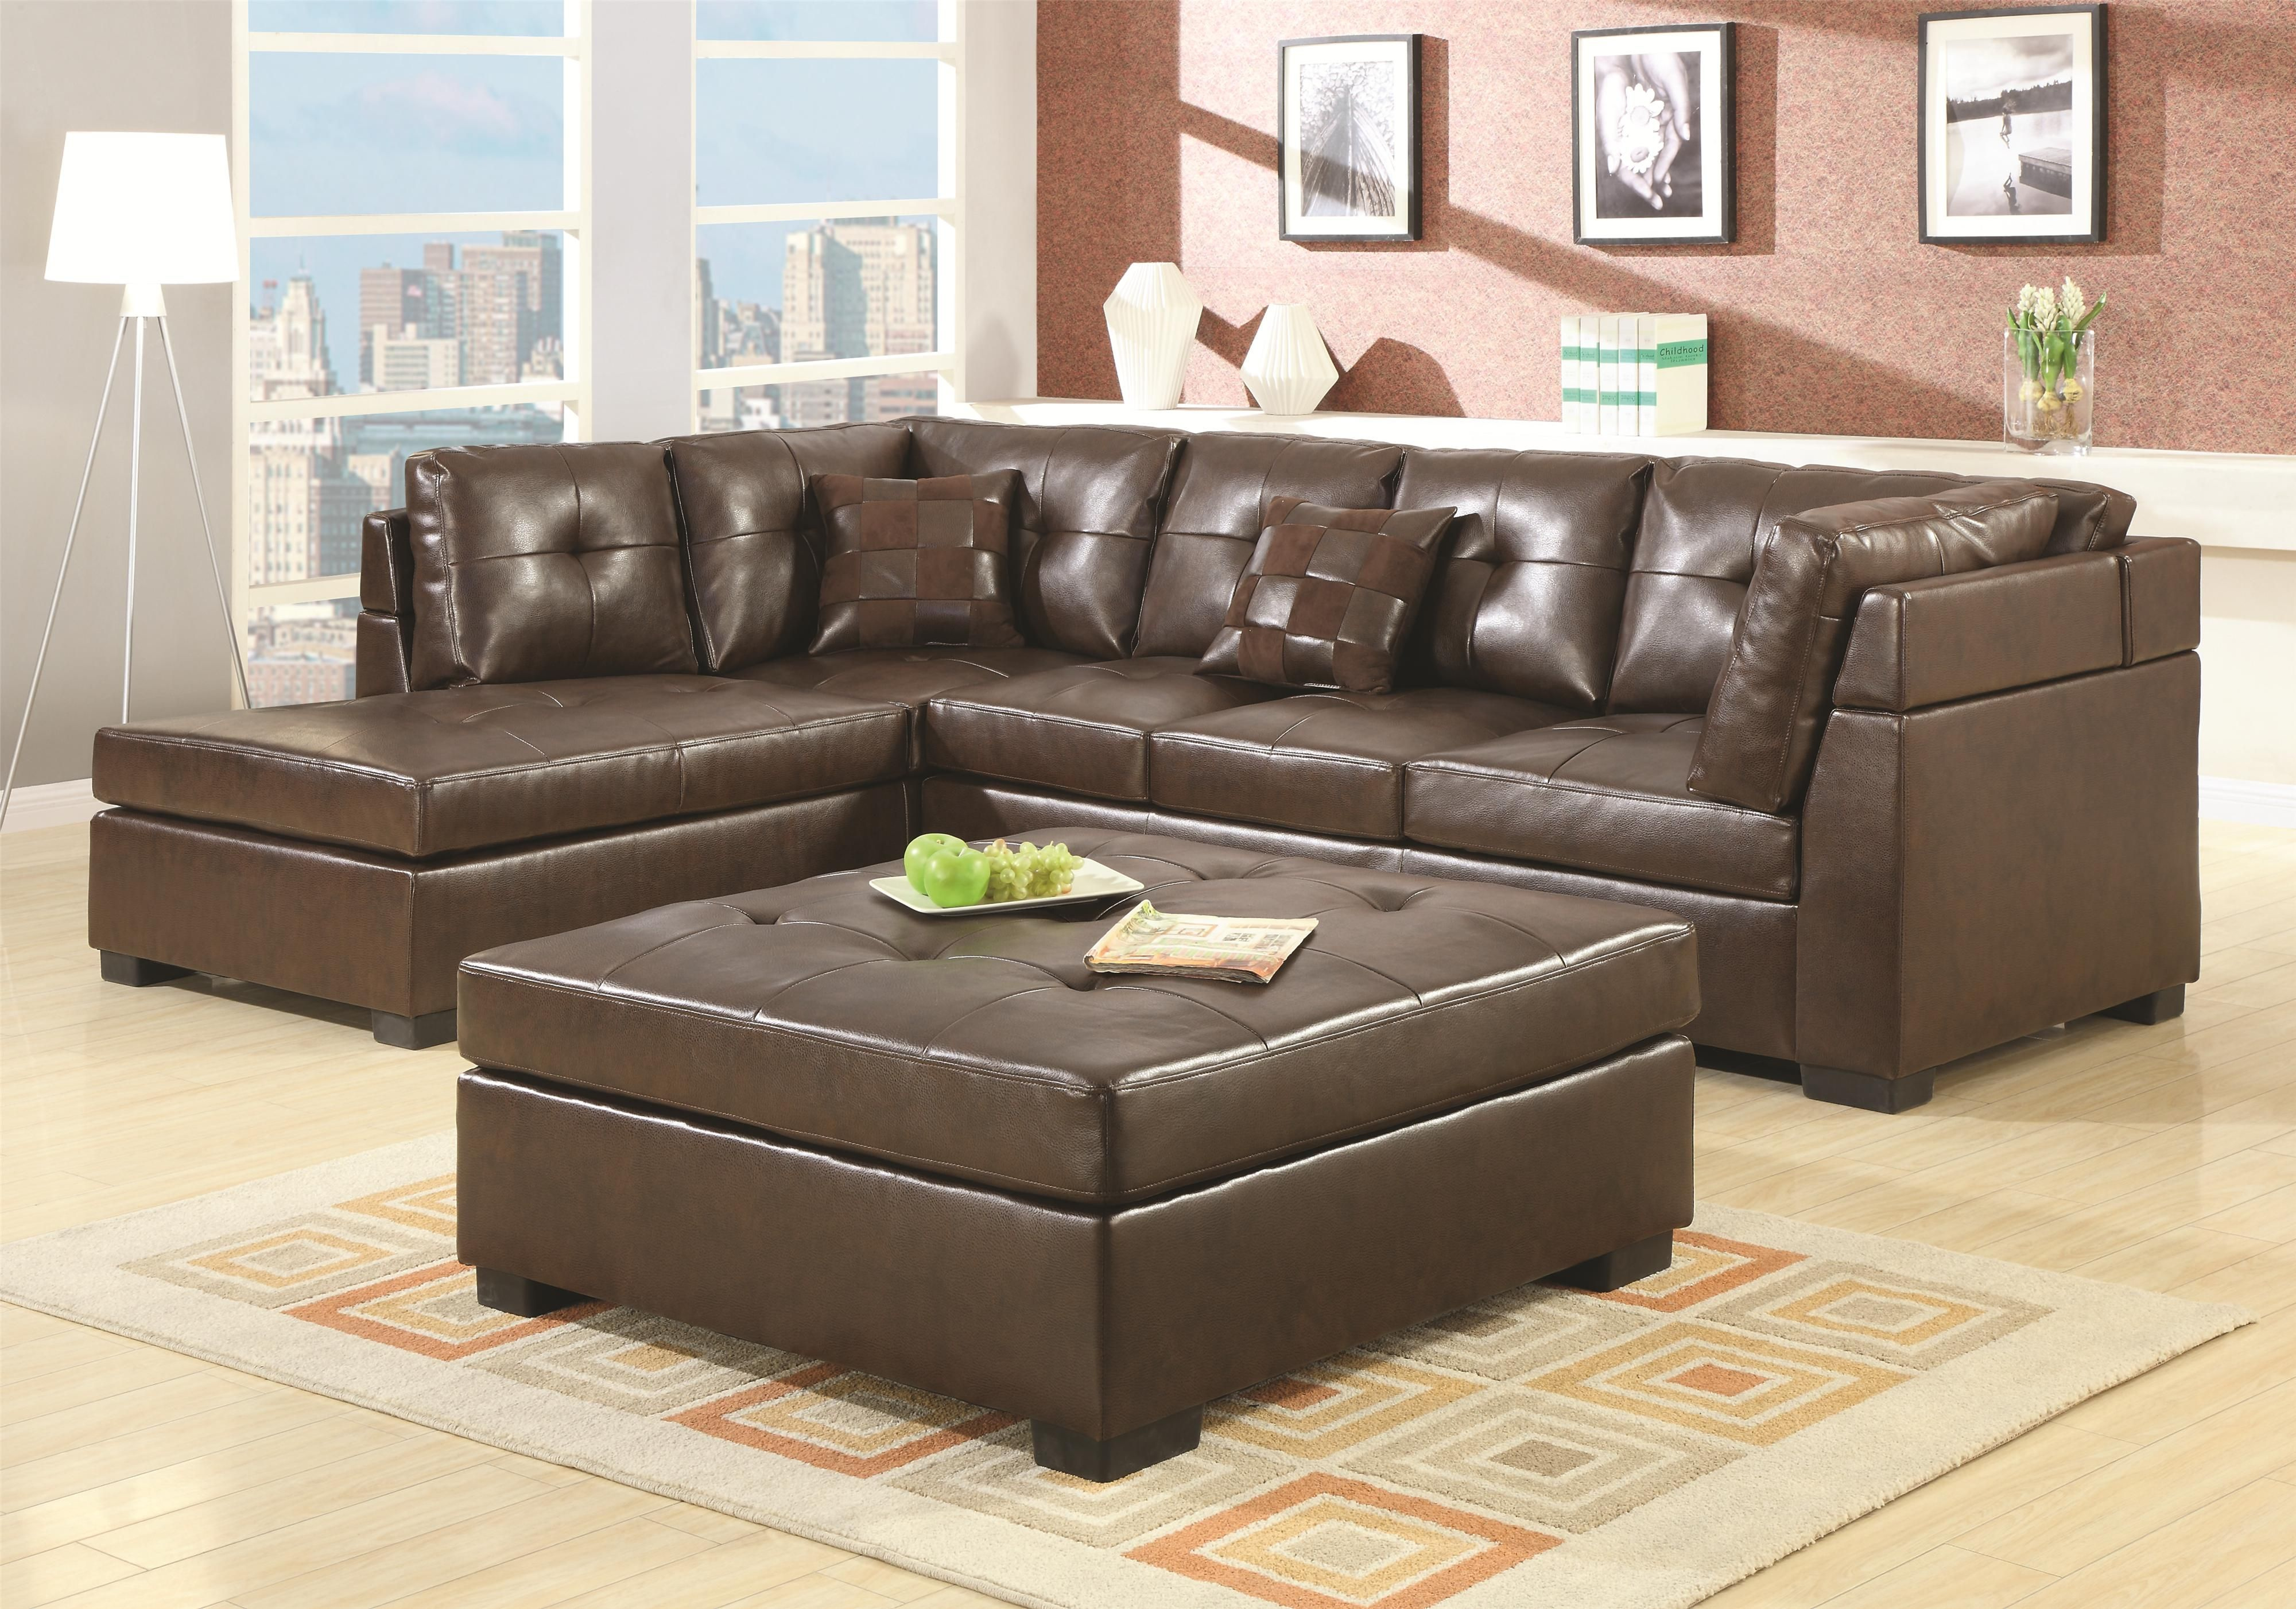 Darie Leather Sectional Sofa with Left Side Chaise by Coaster